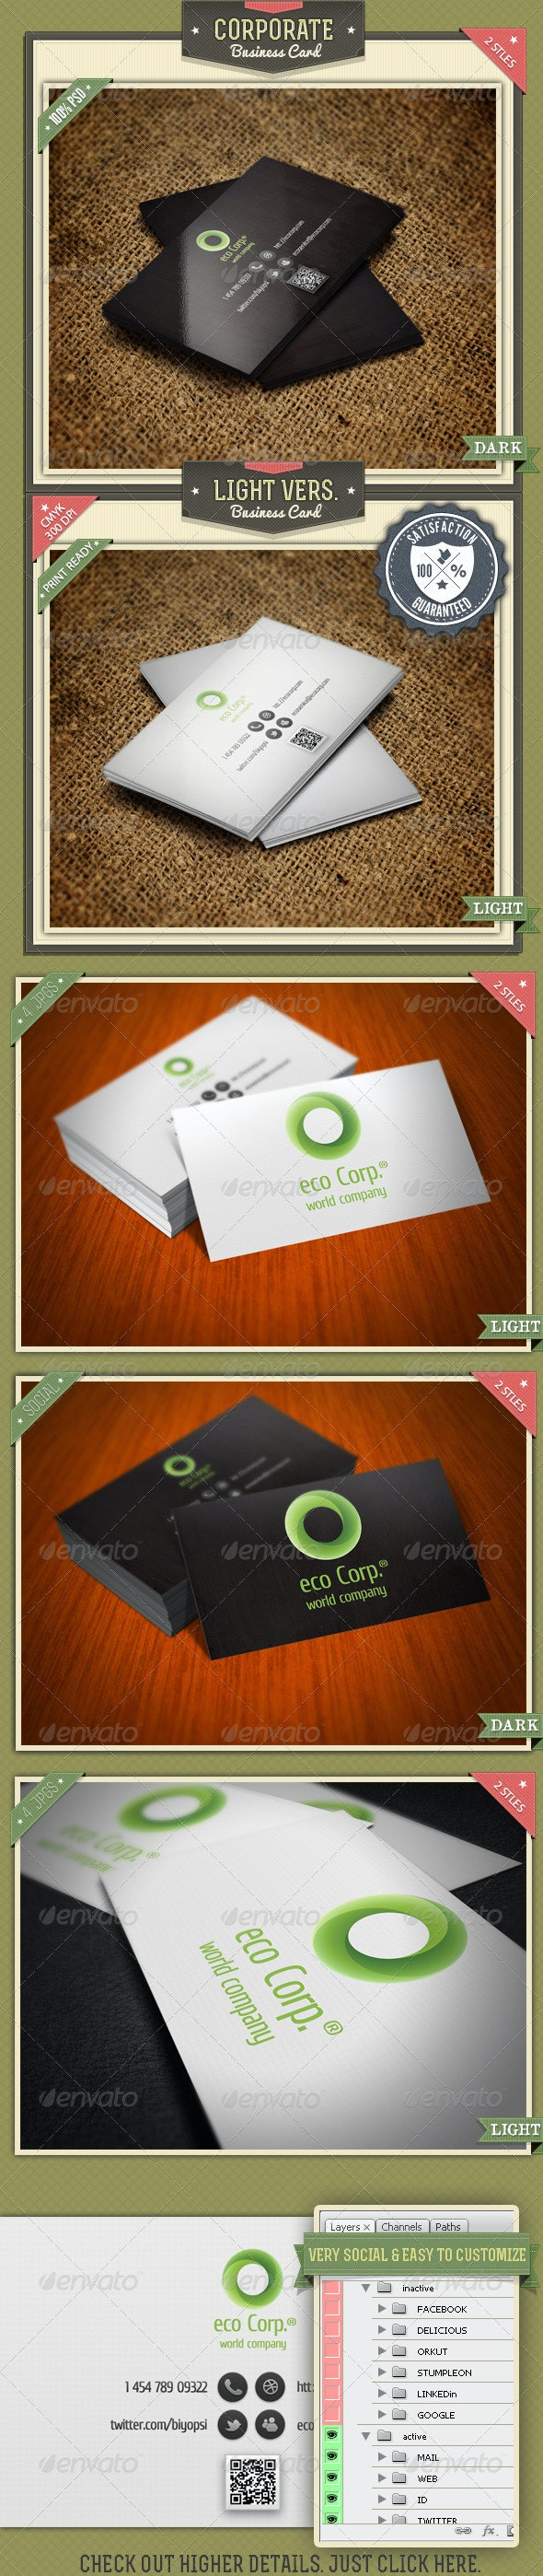 Corporate Business Card 2 Styles - Corporate Business Cards